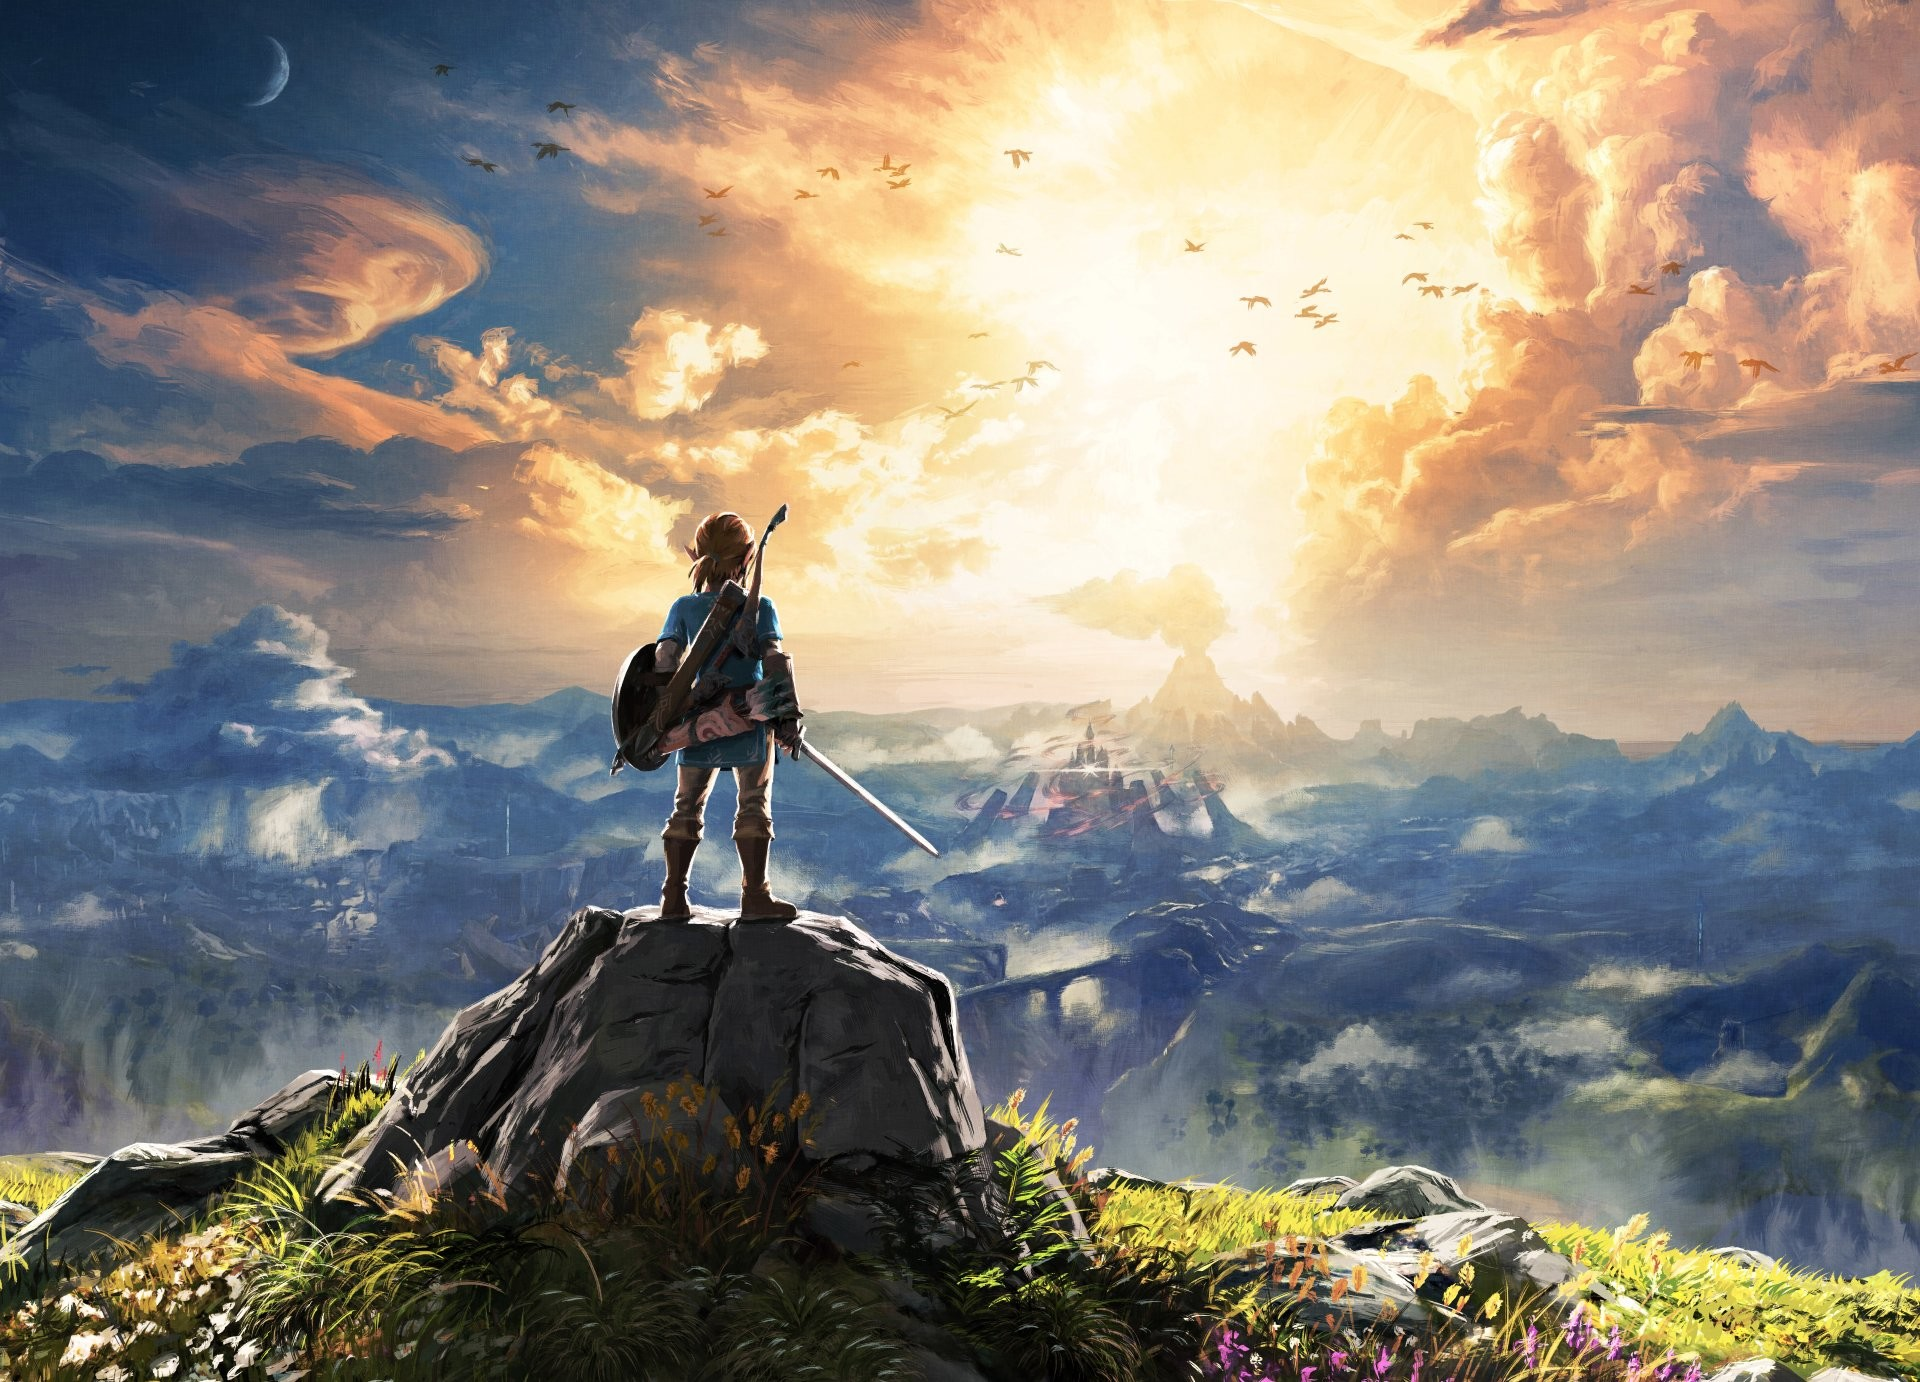 1920x1382 134 The Legend of Zelda: Breath of the Wild HD Wallpapers | Hintergründe -  Wallpaper Abyss